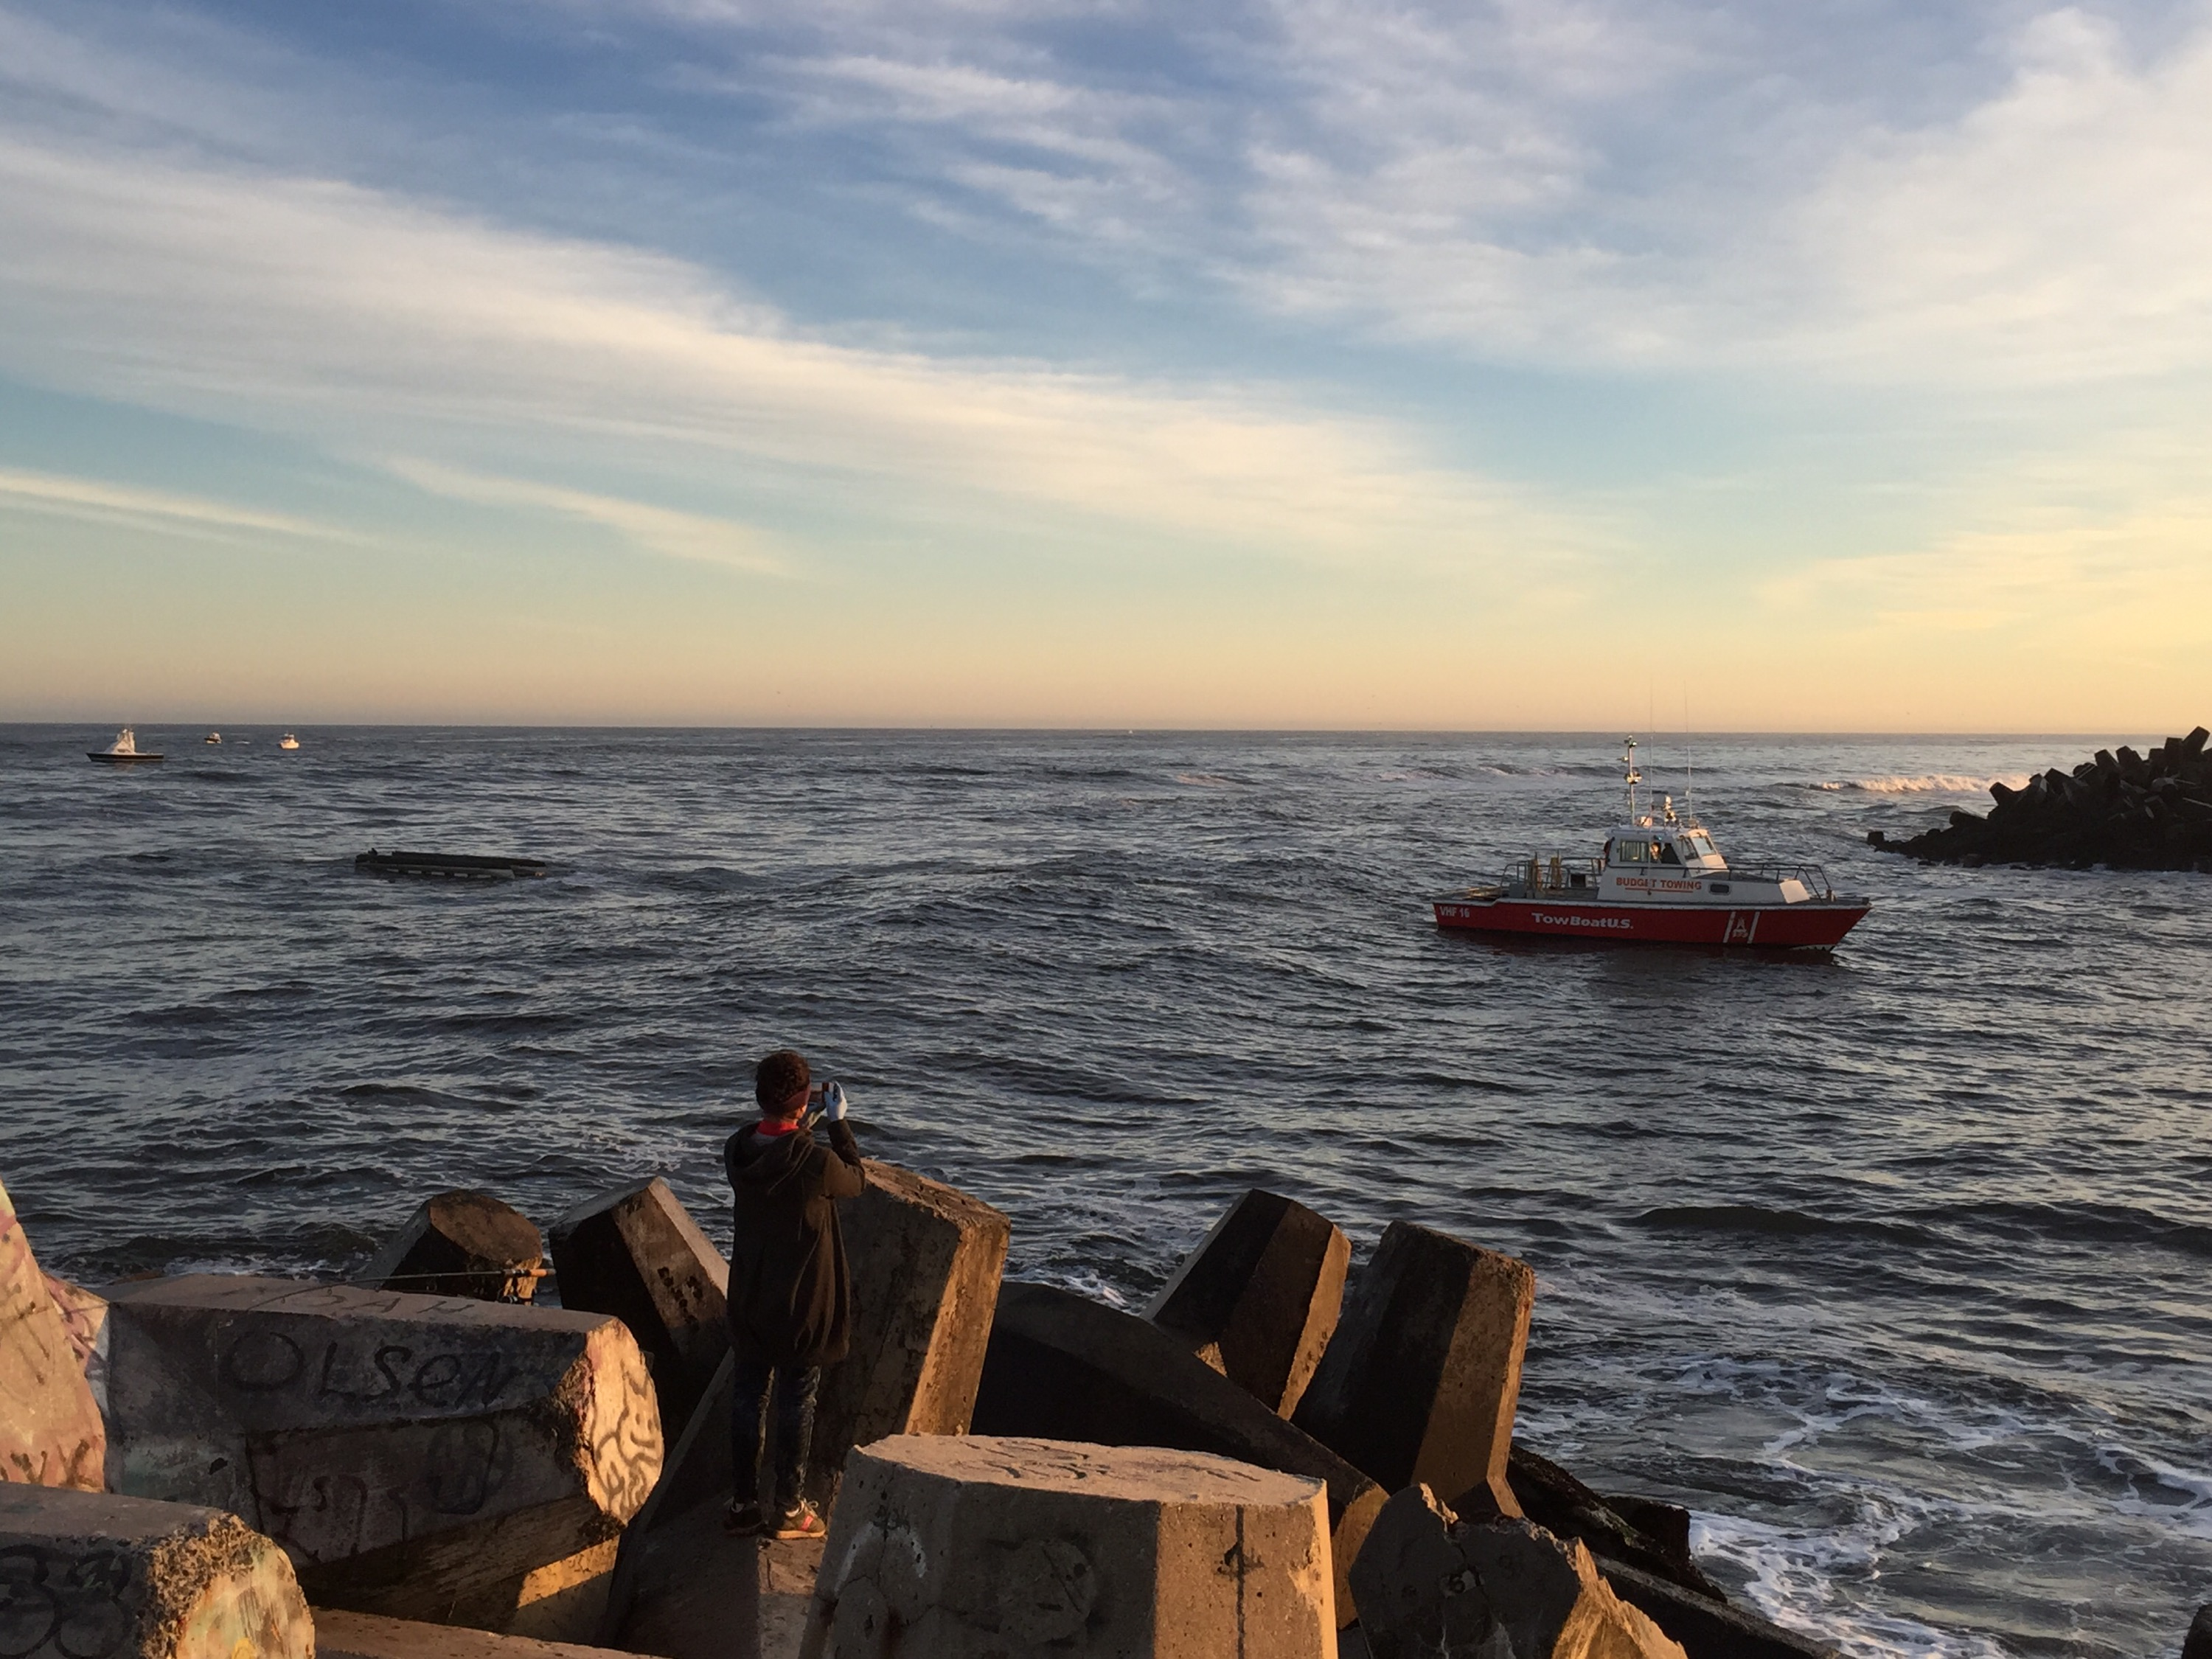 A pontoon boat that capsized off Manasquan Inlet is towed in. (Photo: Daniel Nee)